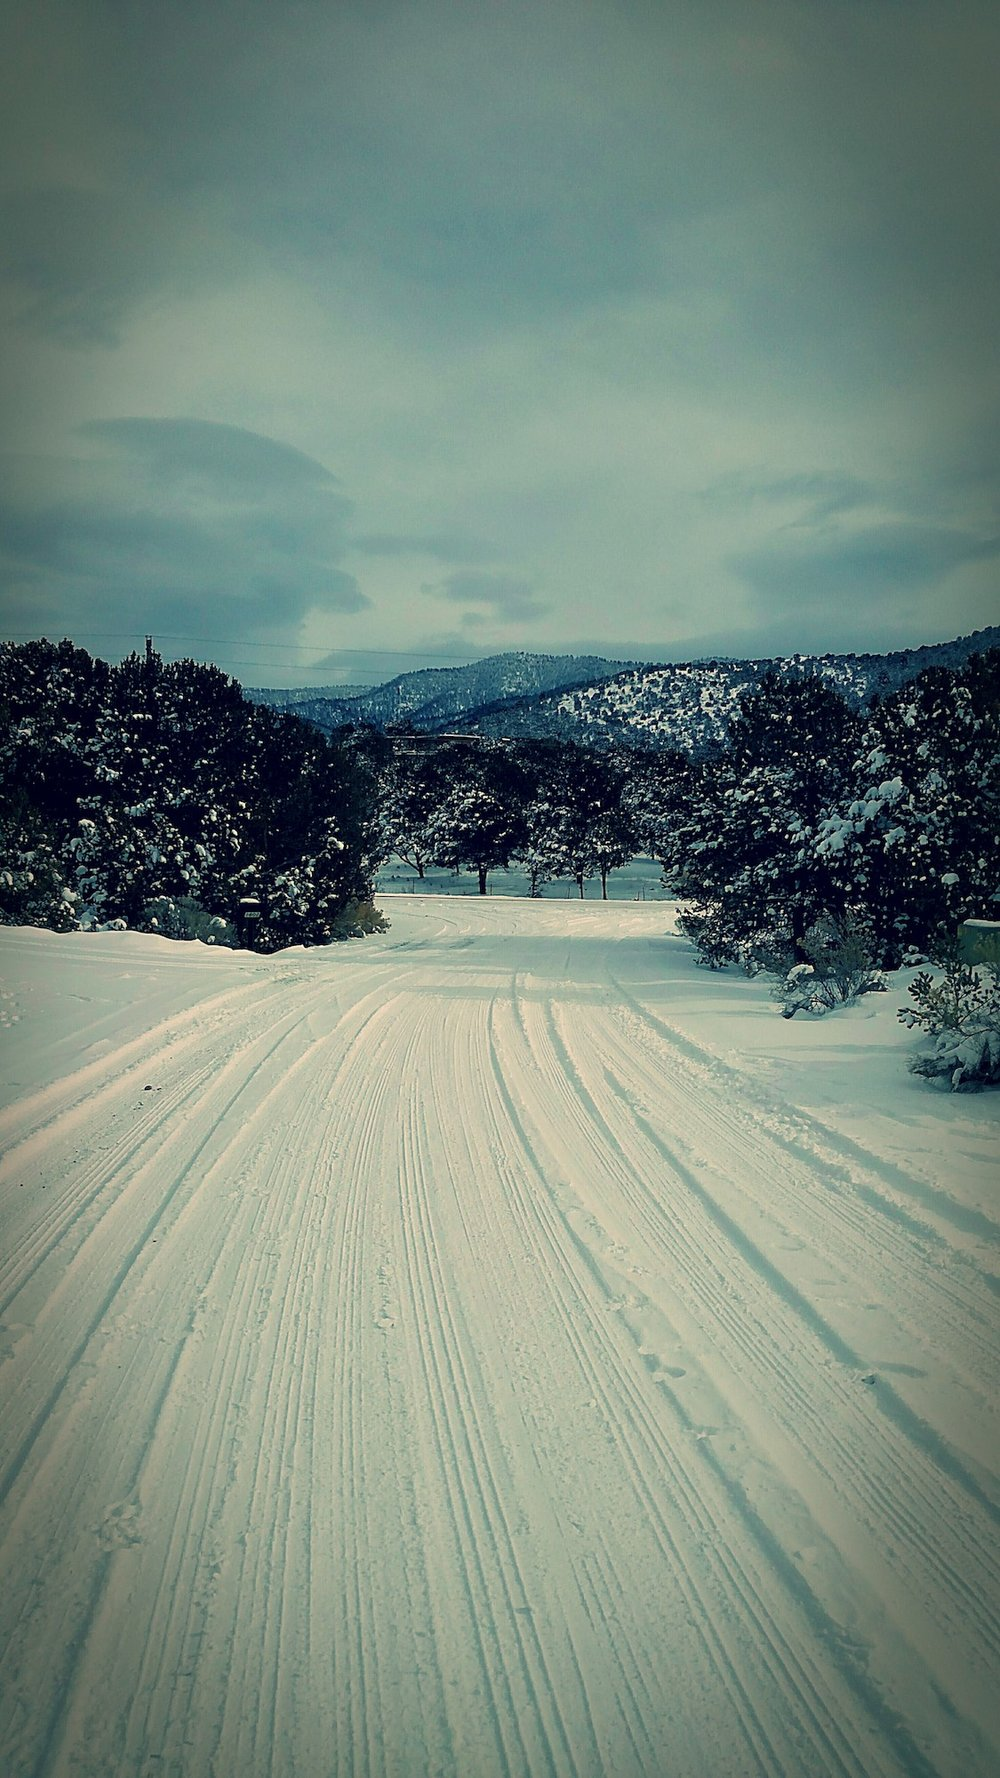 Canyon Road (or thereabouts) in Santa Fe, New Mexico